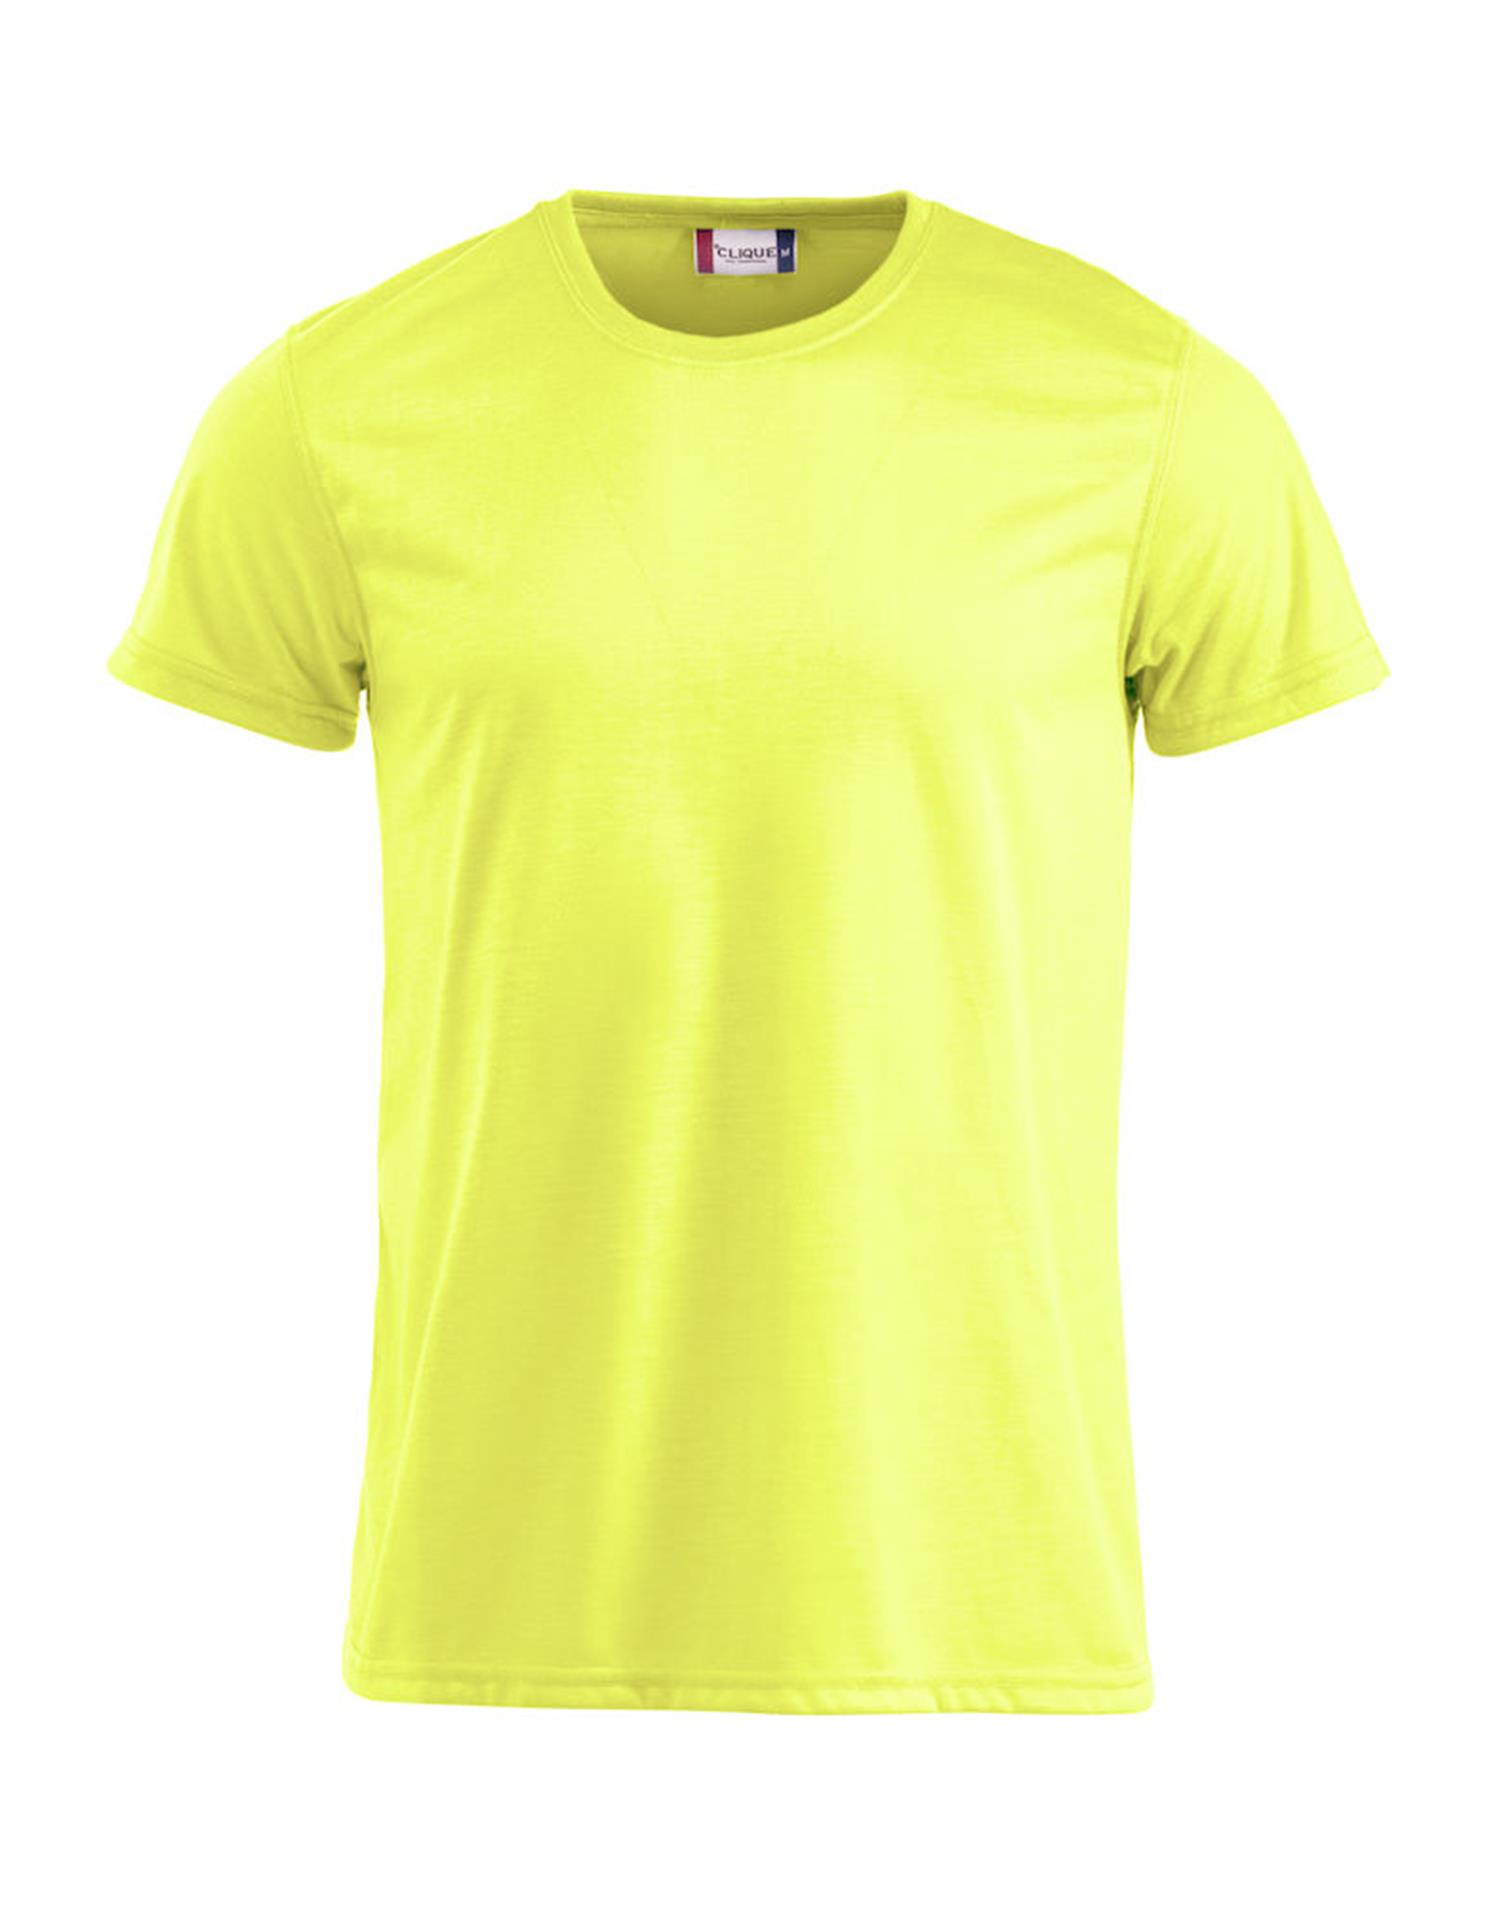 NewWave T-shirt Neon-T  (M - GIALLO NEON)